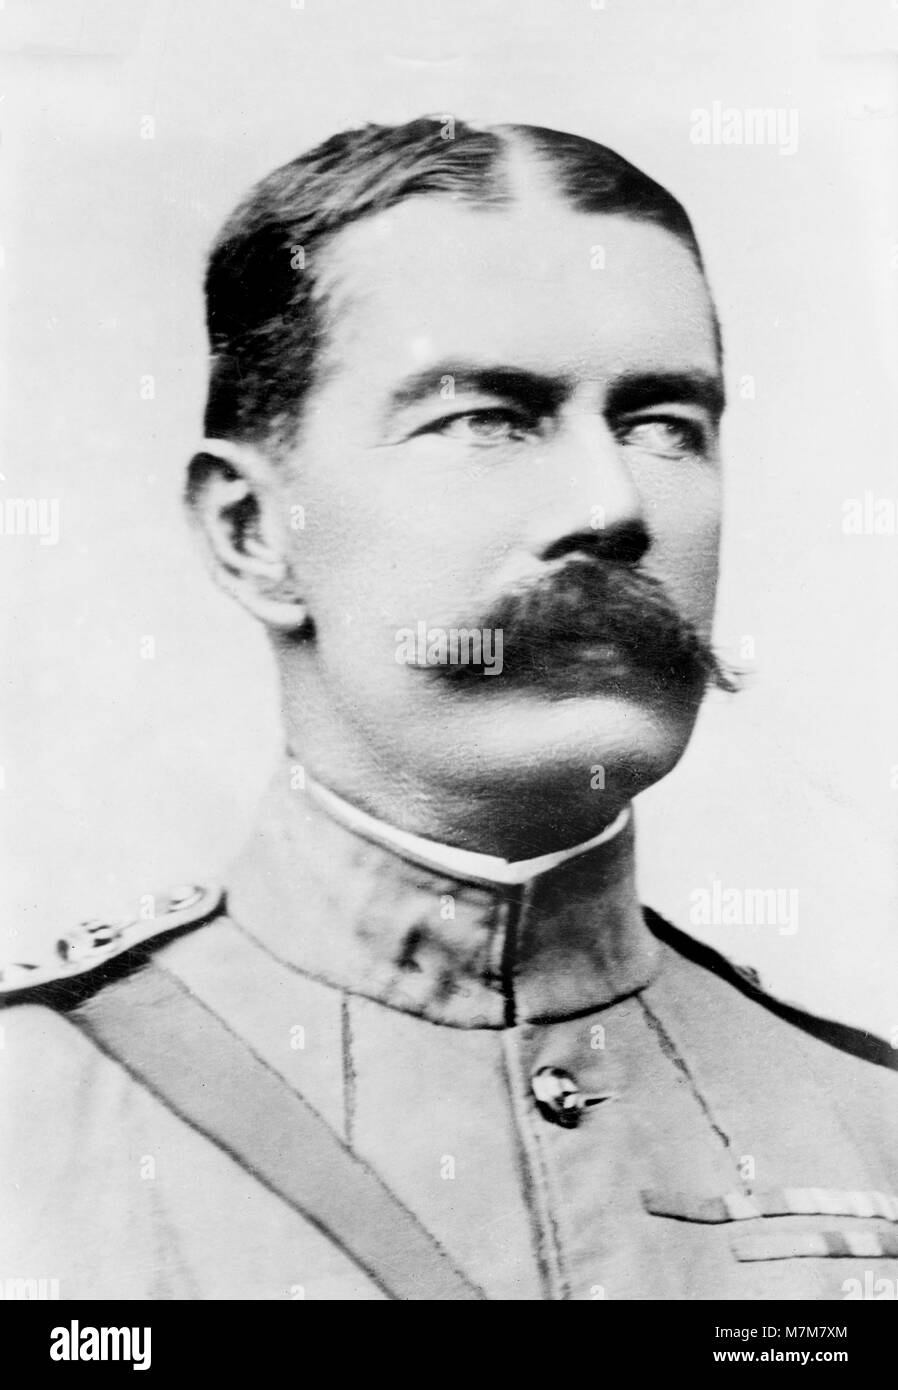 Lord Kitchener Portrait Stock Photos & Lord Kitchener Portrait Stock ...